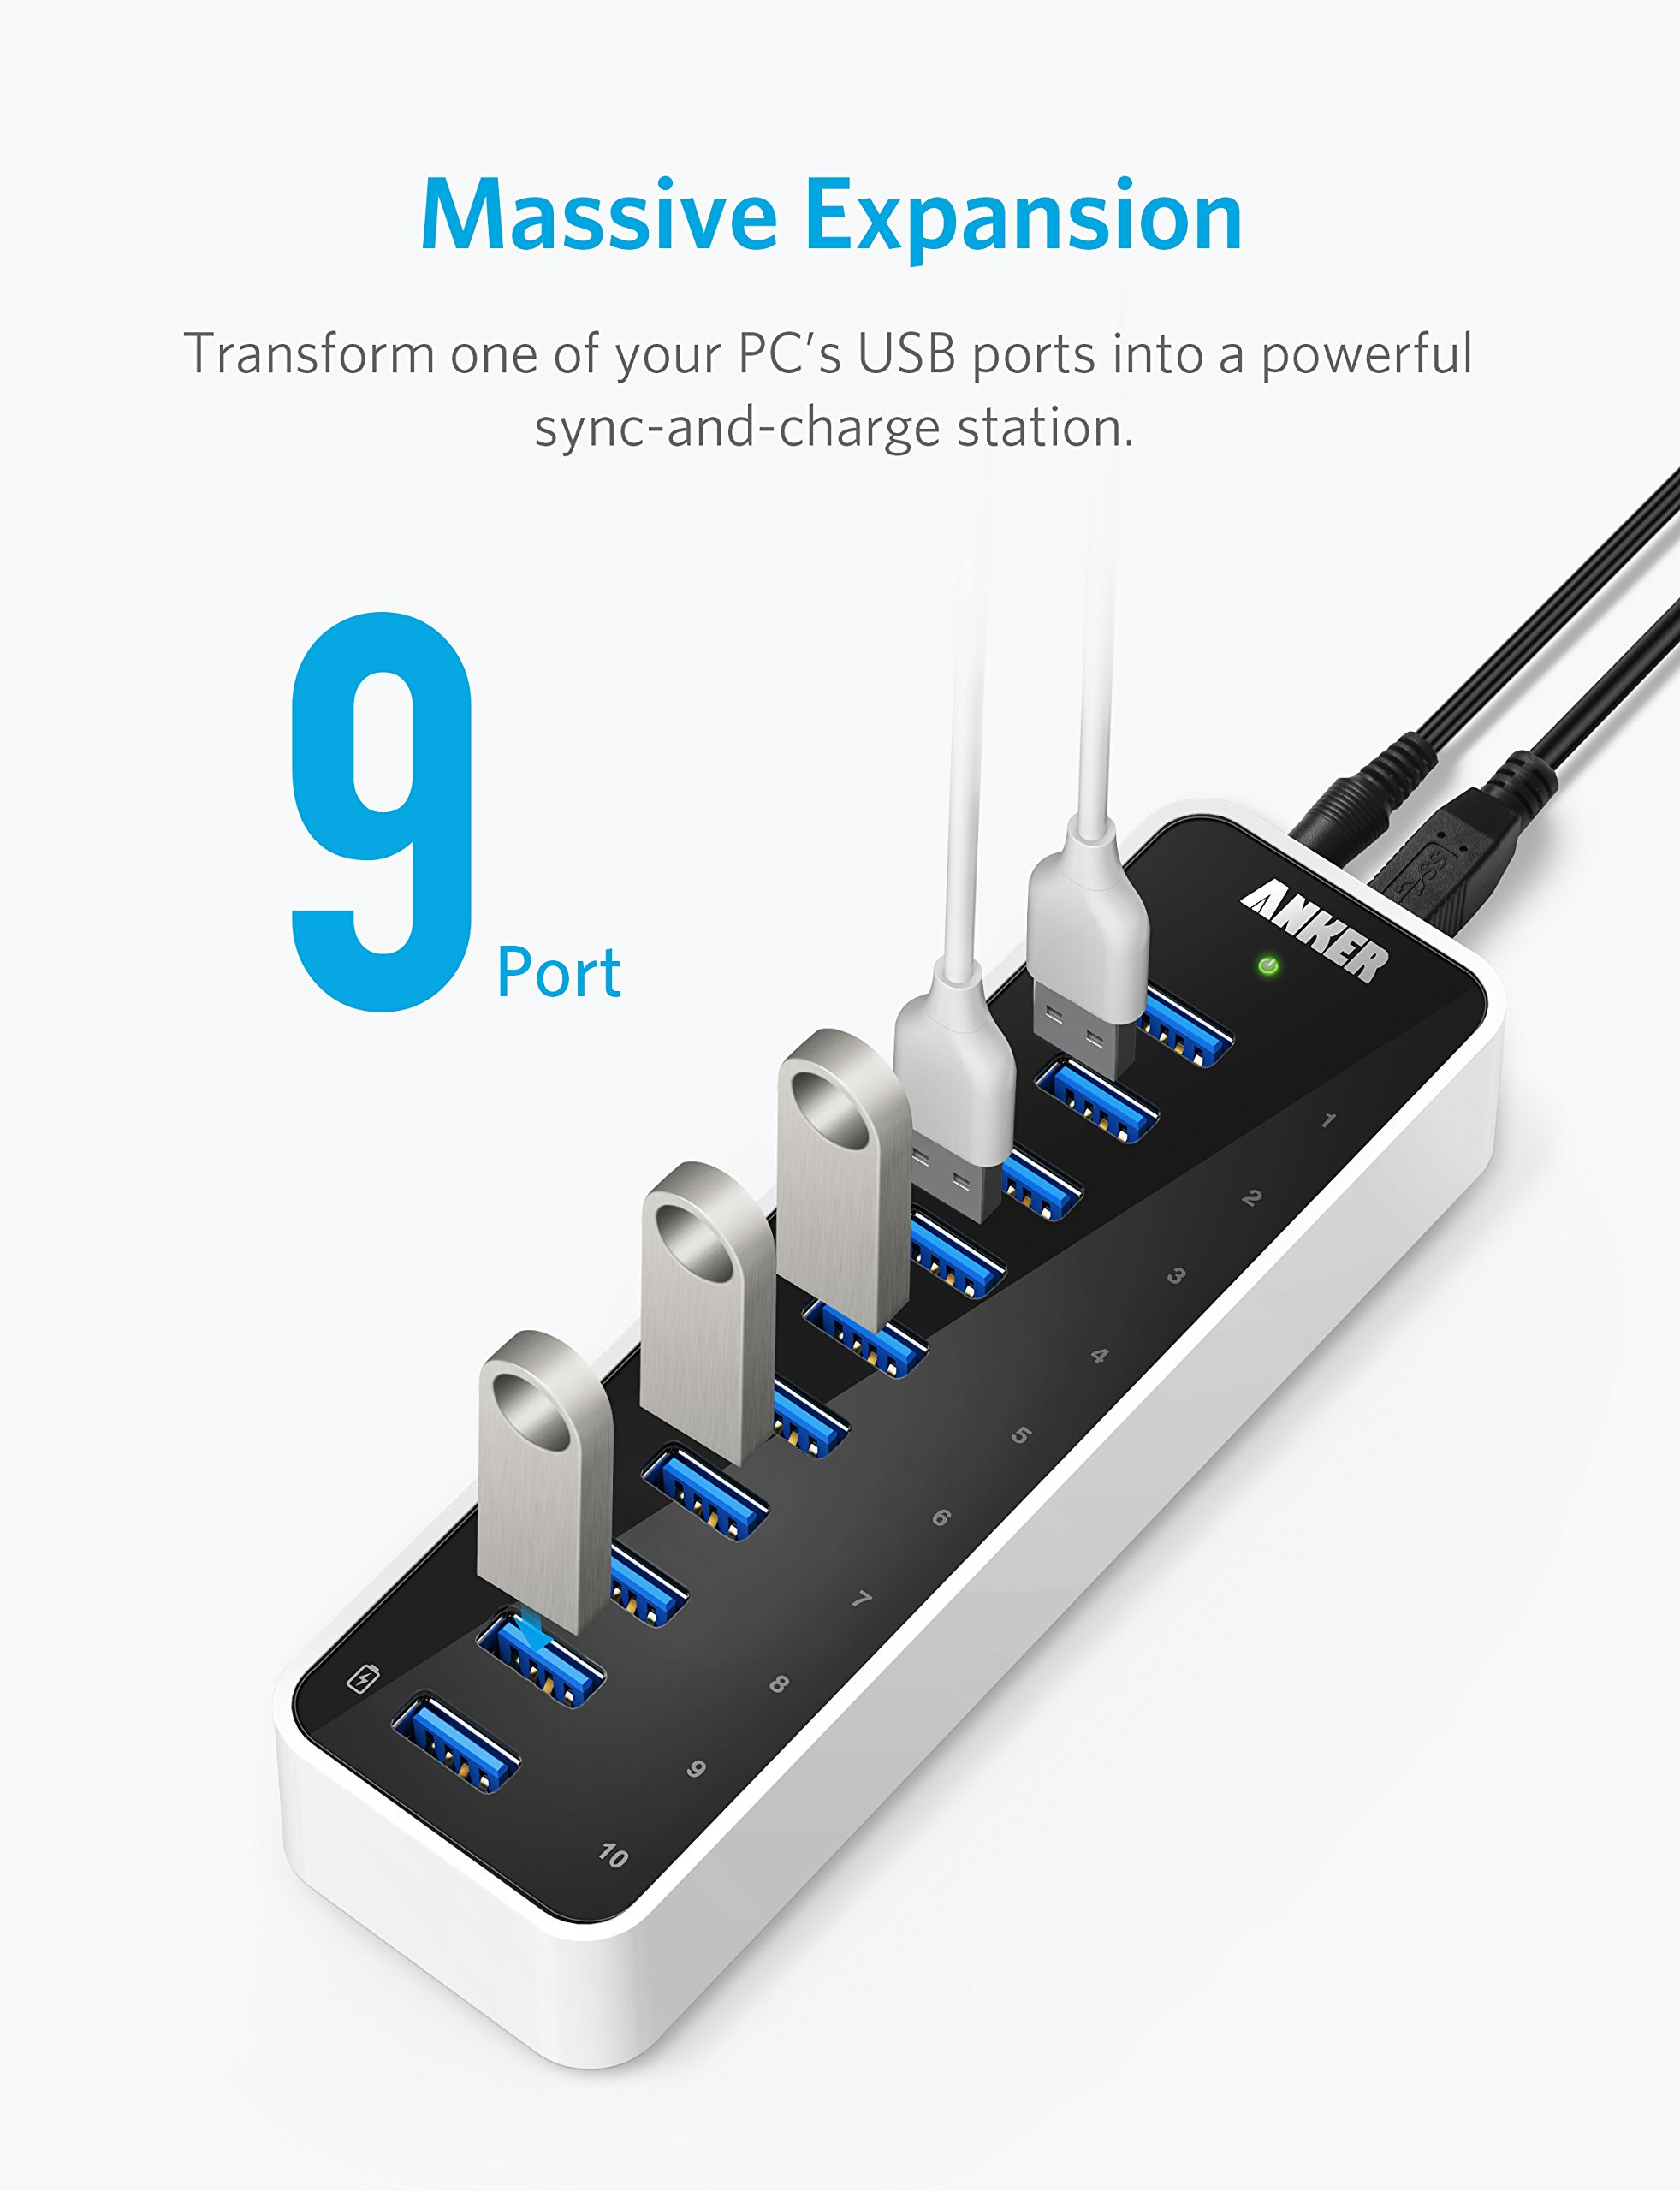 Anker USB 3.0 9-Port Hub + 5V 2.1A Smart Charging Port with 12V 5A Power Adapter by Anker (Image #6)